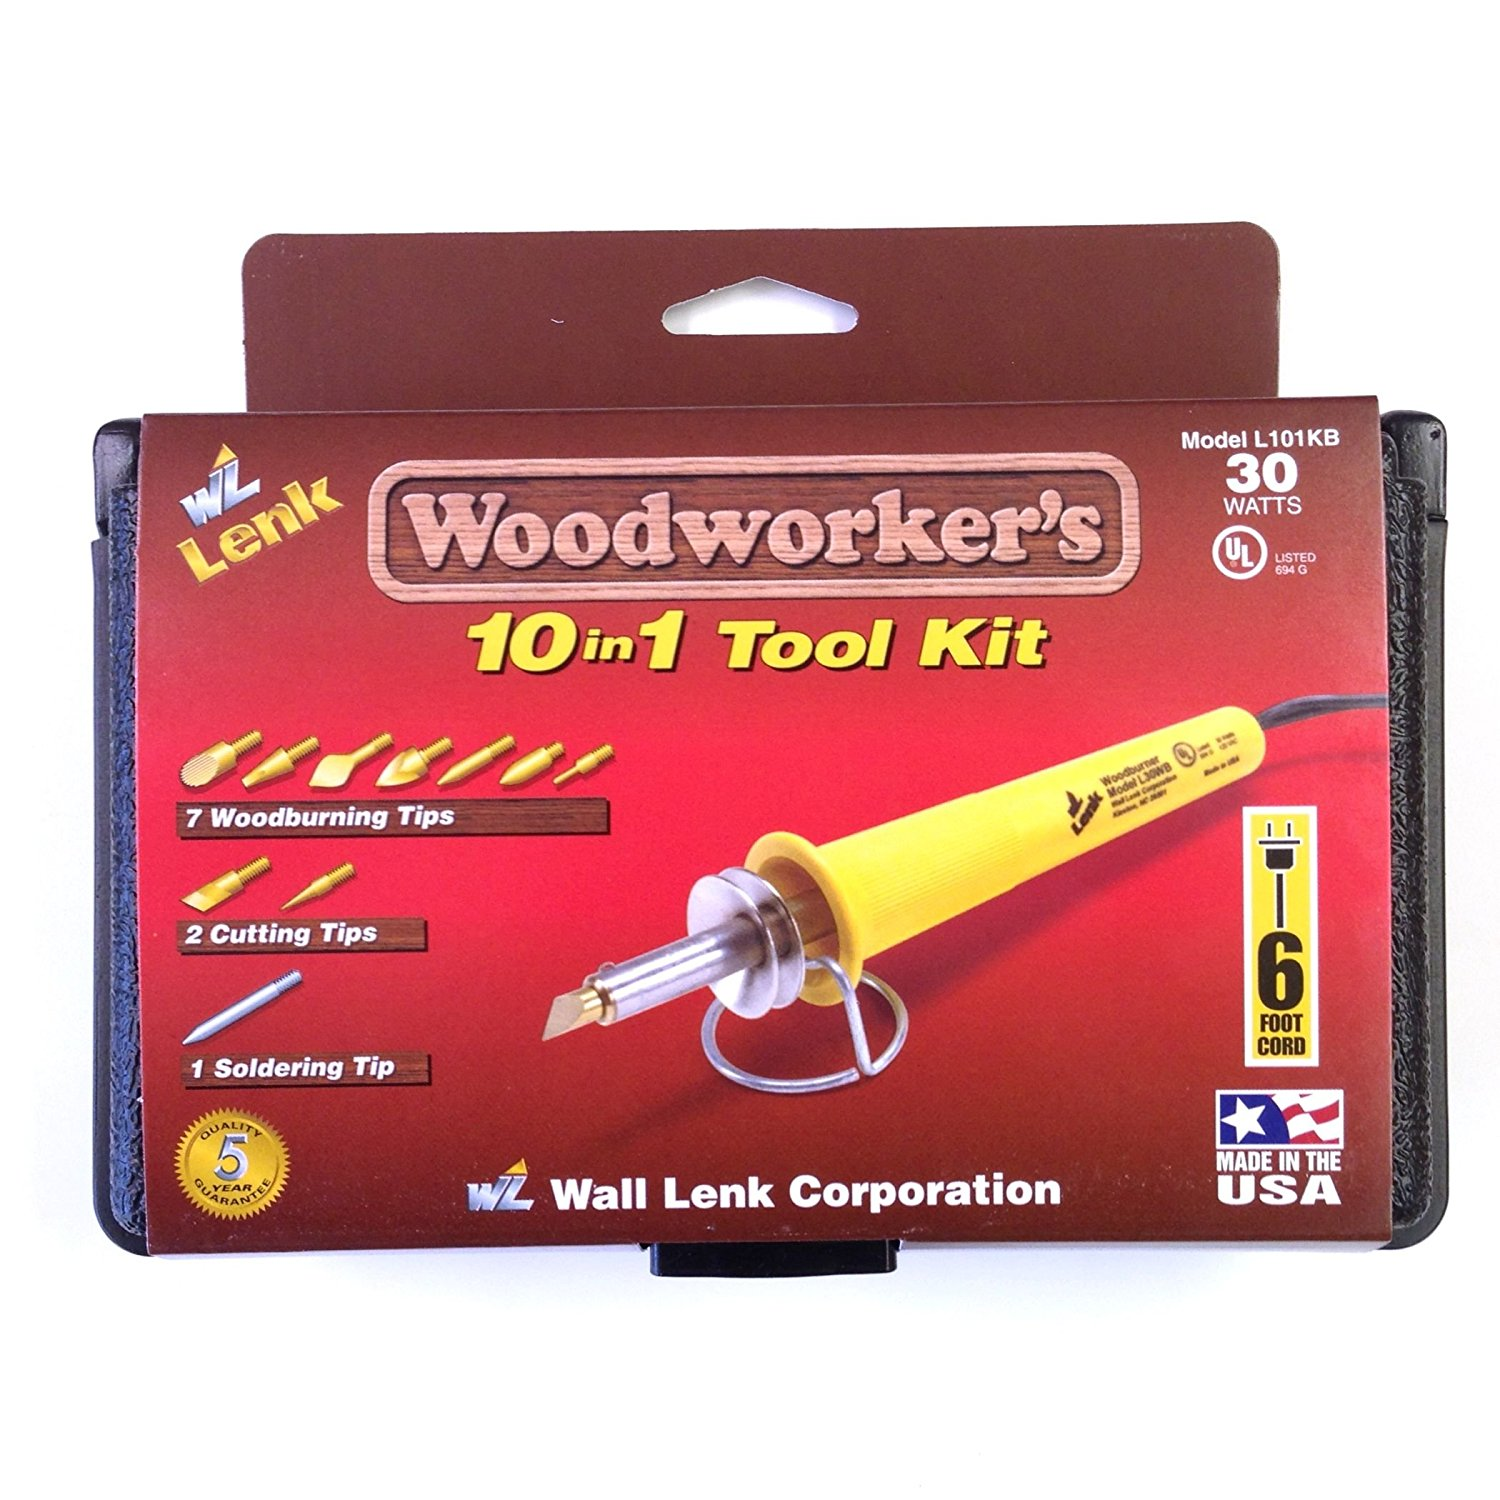 Wall Lenk L101KB Woodworker-foots 10-in-1 Tool Kit